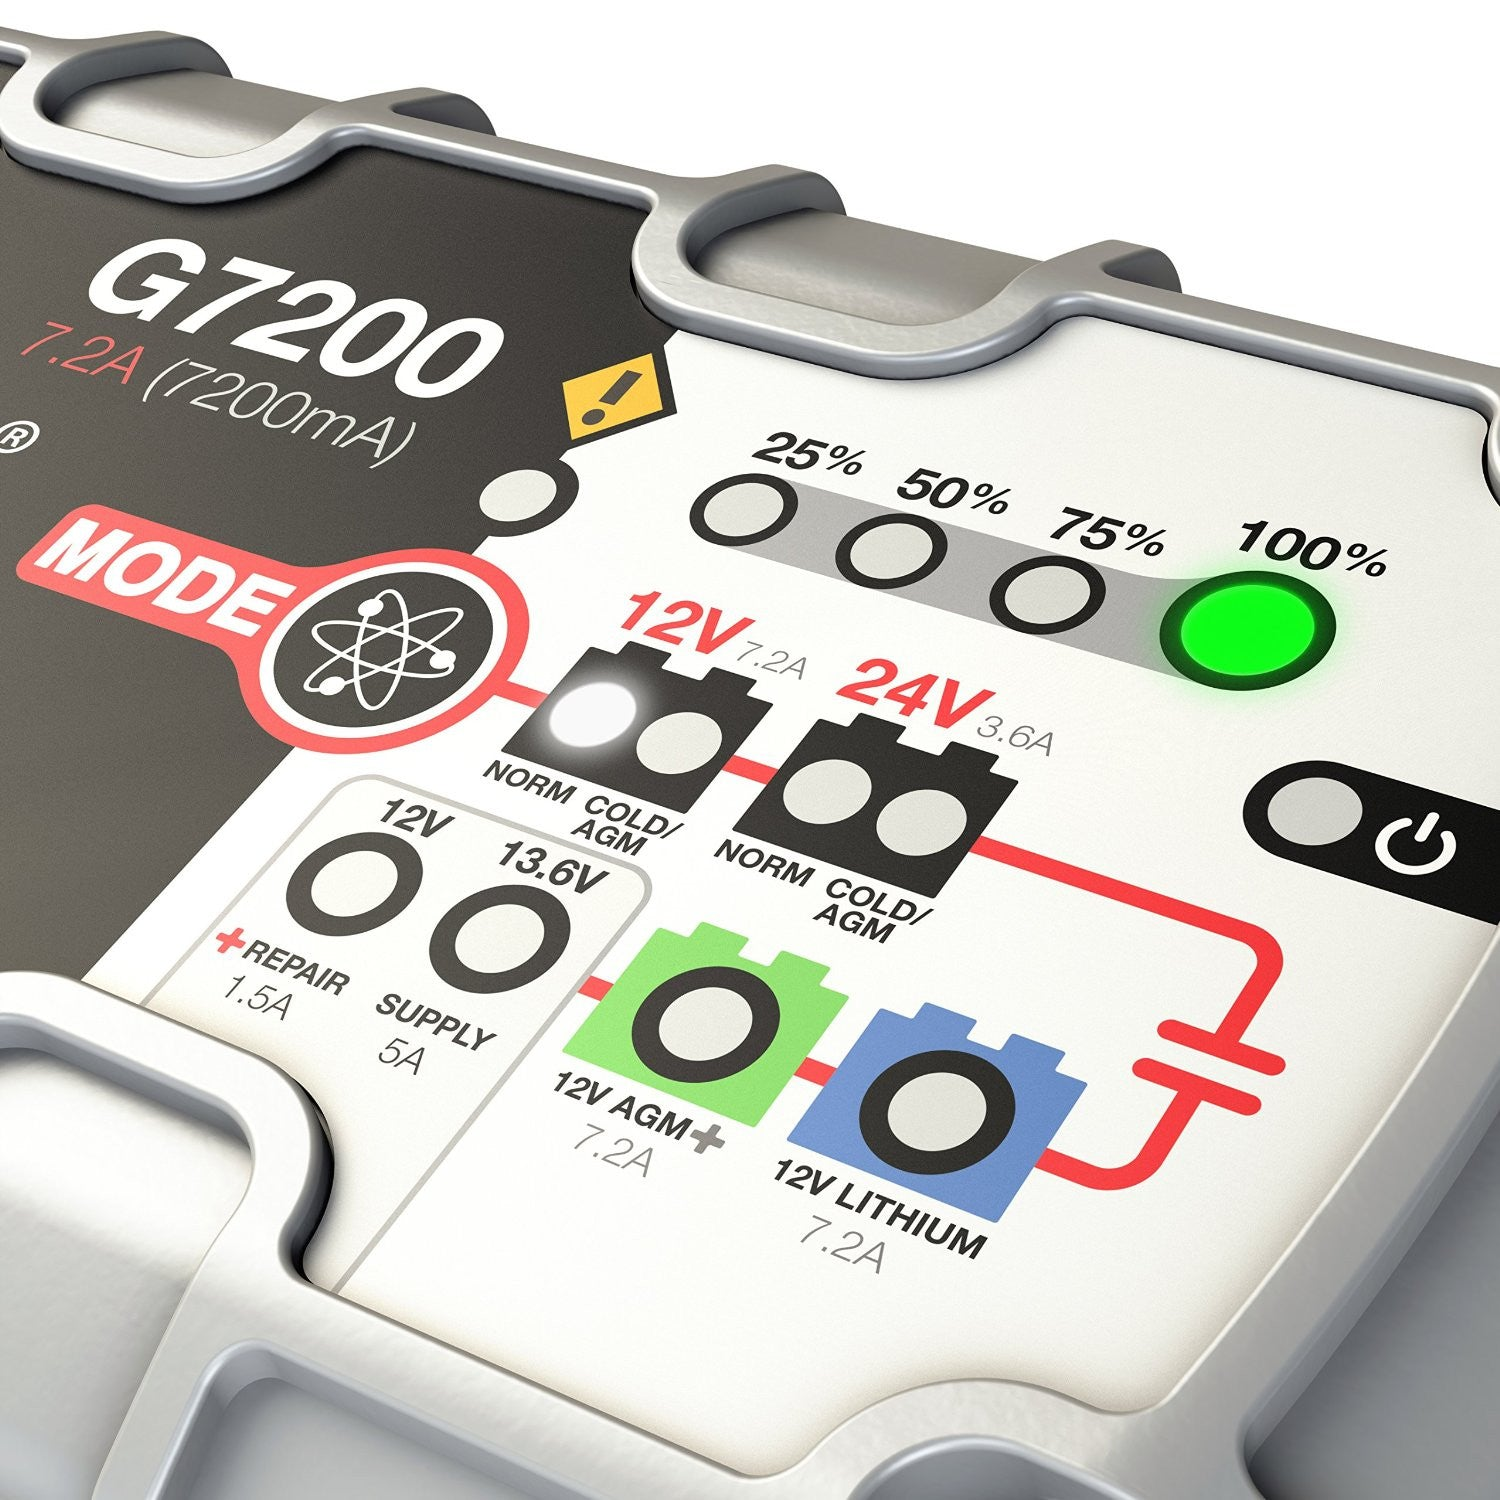 Noco Genius G7200 12v 24v 72a Ultrasafe Smart Battery Charger Agm 7ah Lead Acid